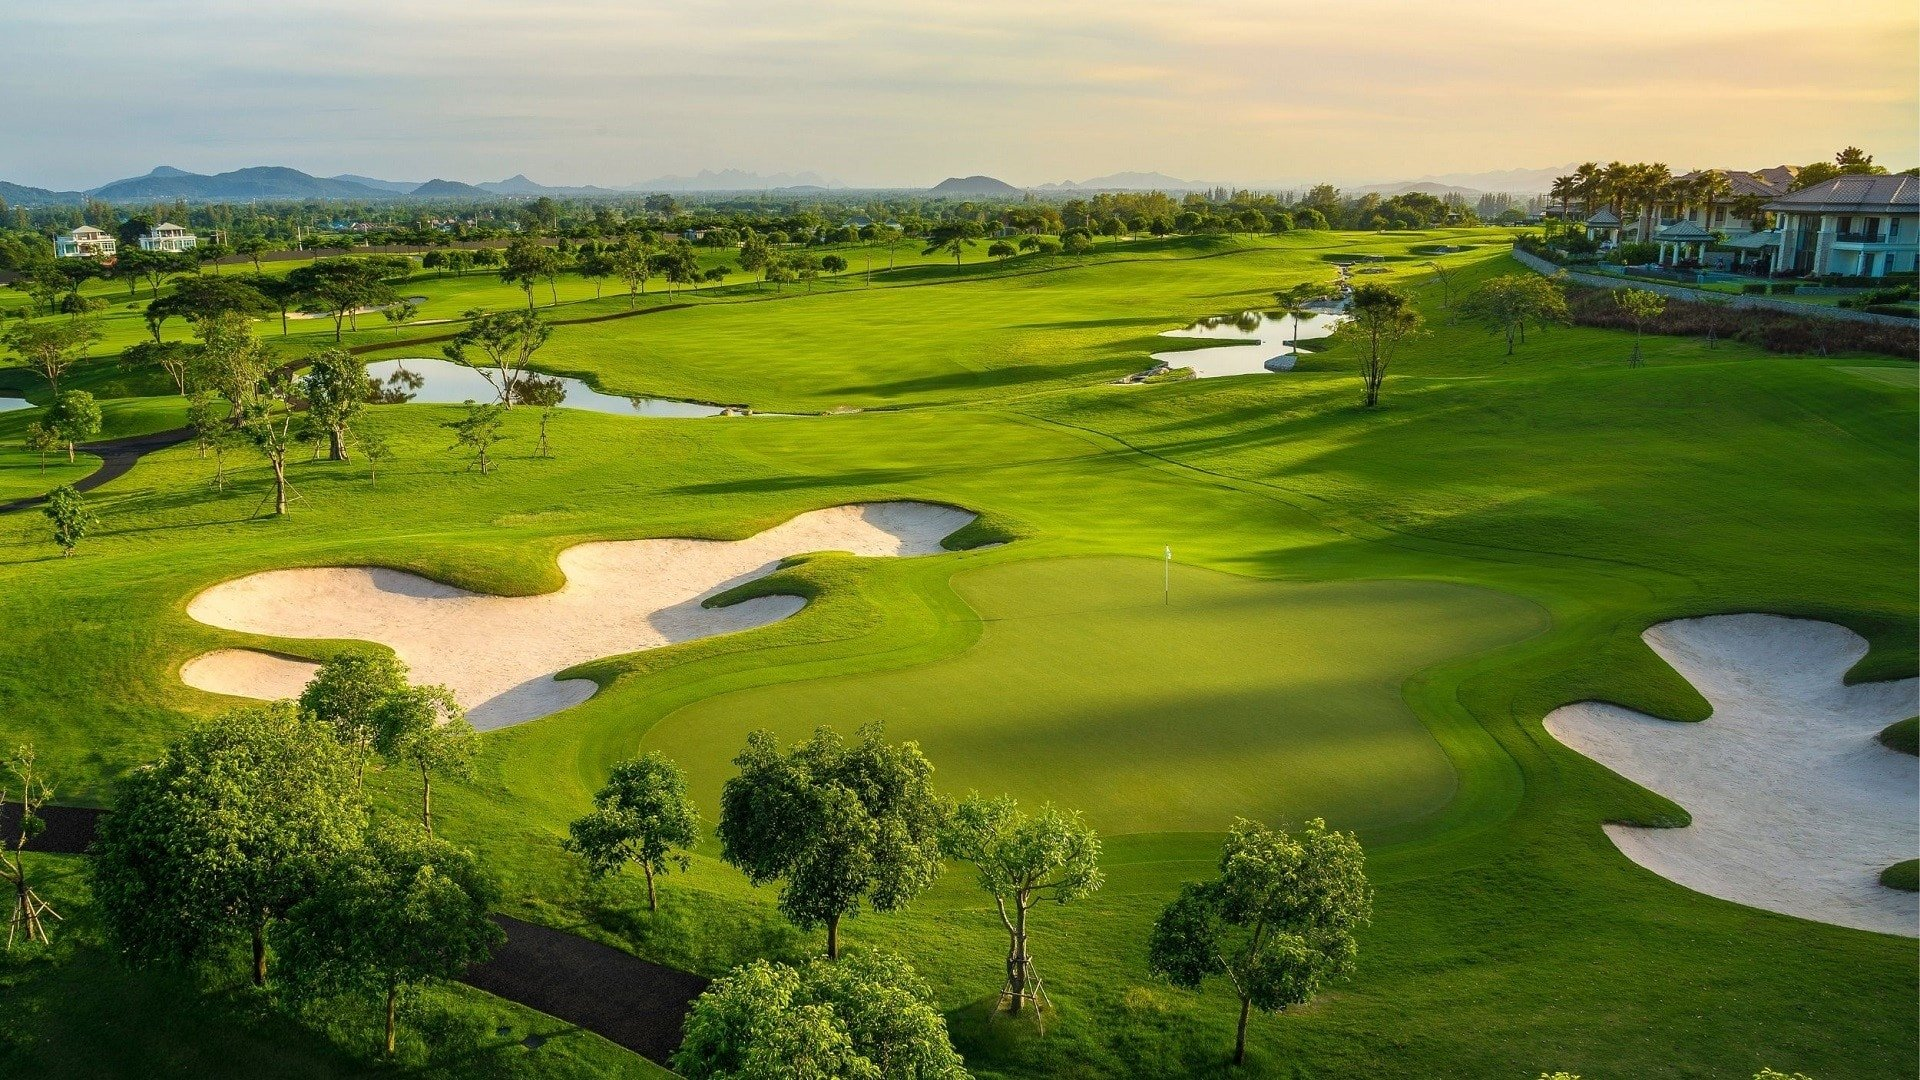 8 Best Golf Courses in Thailand in 2021